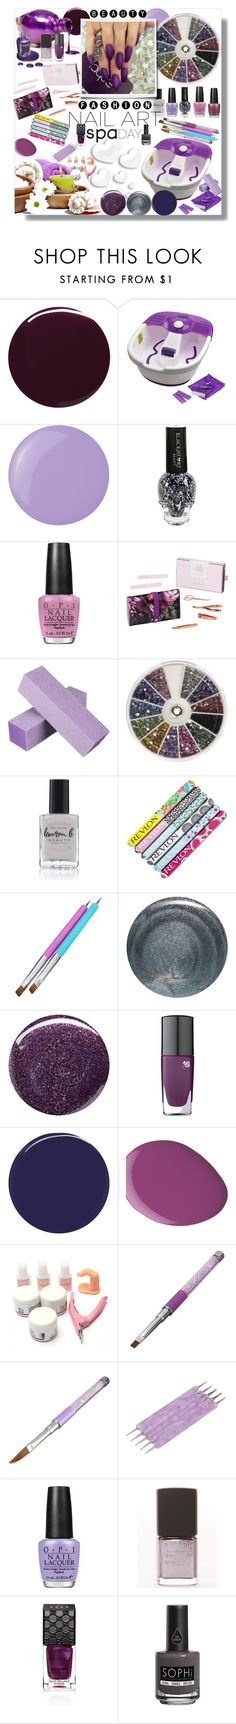 """""""Perfect shades of purple"""" by carleen1978 on Polyvore featuring beauty, Burberry, Dr. Scholl's, TOUS, Essie, OPI, Ted Baker, Lauren B. Beauty, Revlon and RGB Cosmetics"""